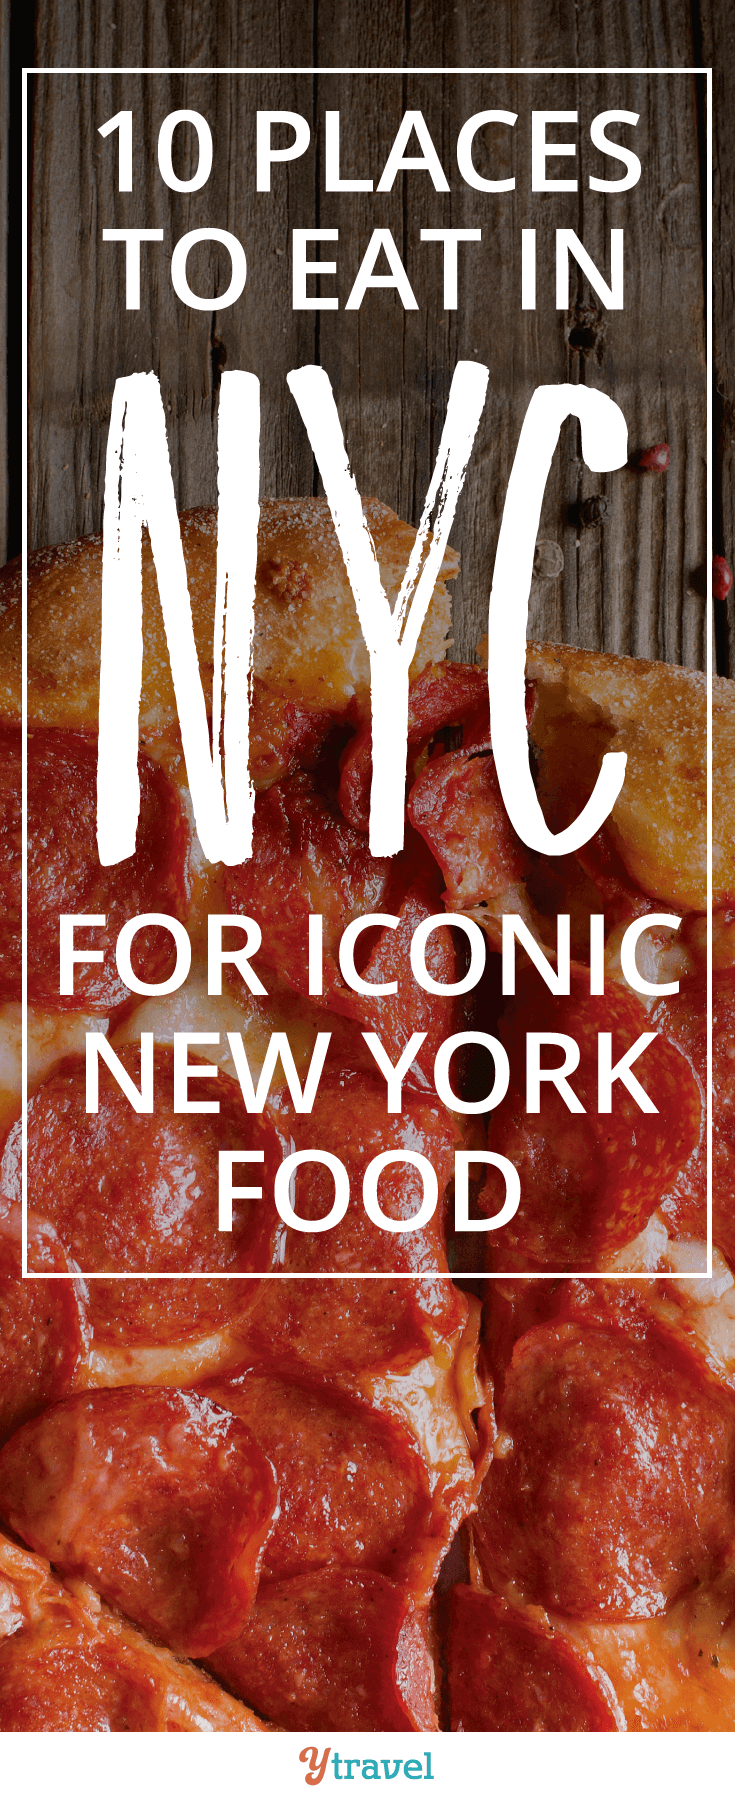 10 places to eat in NYC for iconic New York food. From pizza to bagels to rueben sandwiches we'll make sure you're stomach is satisfied!